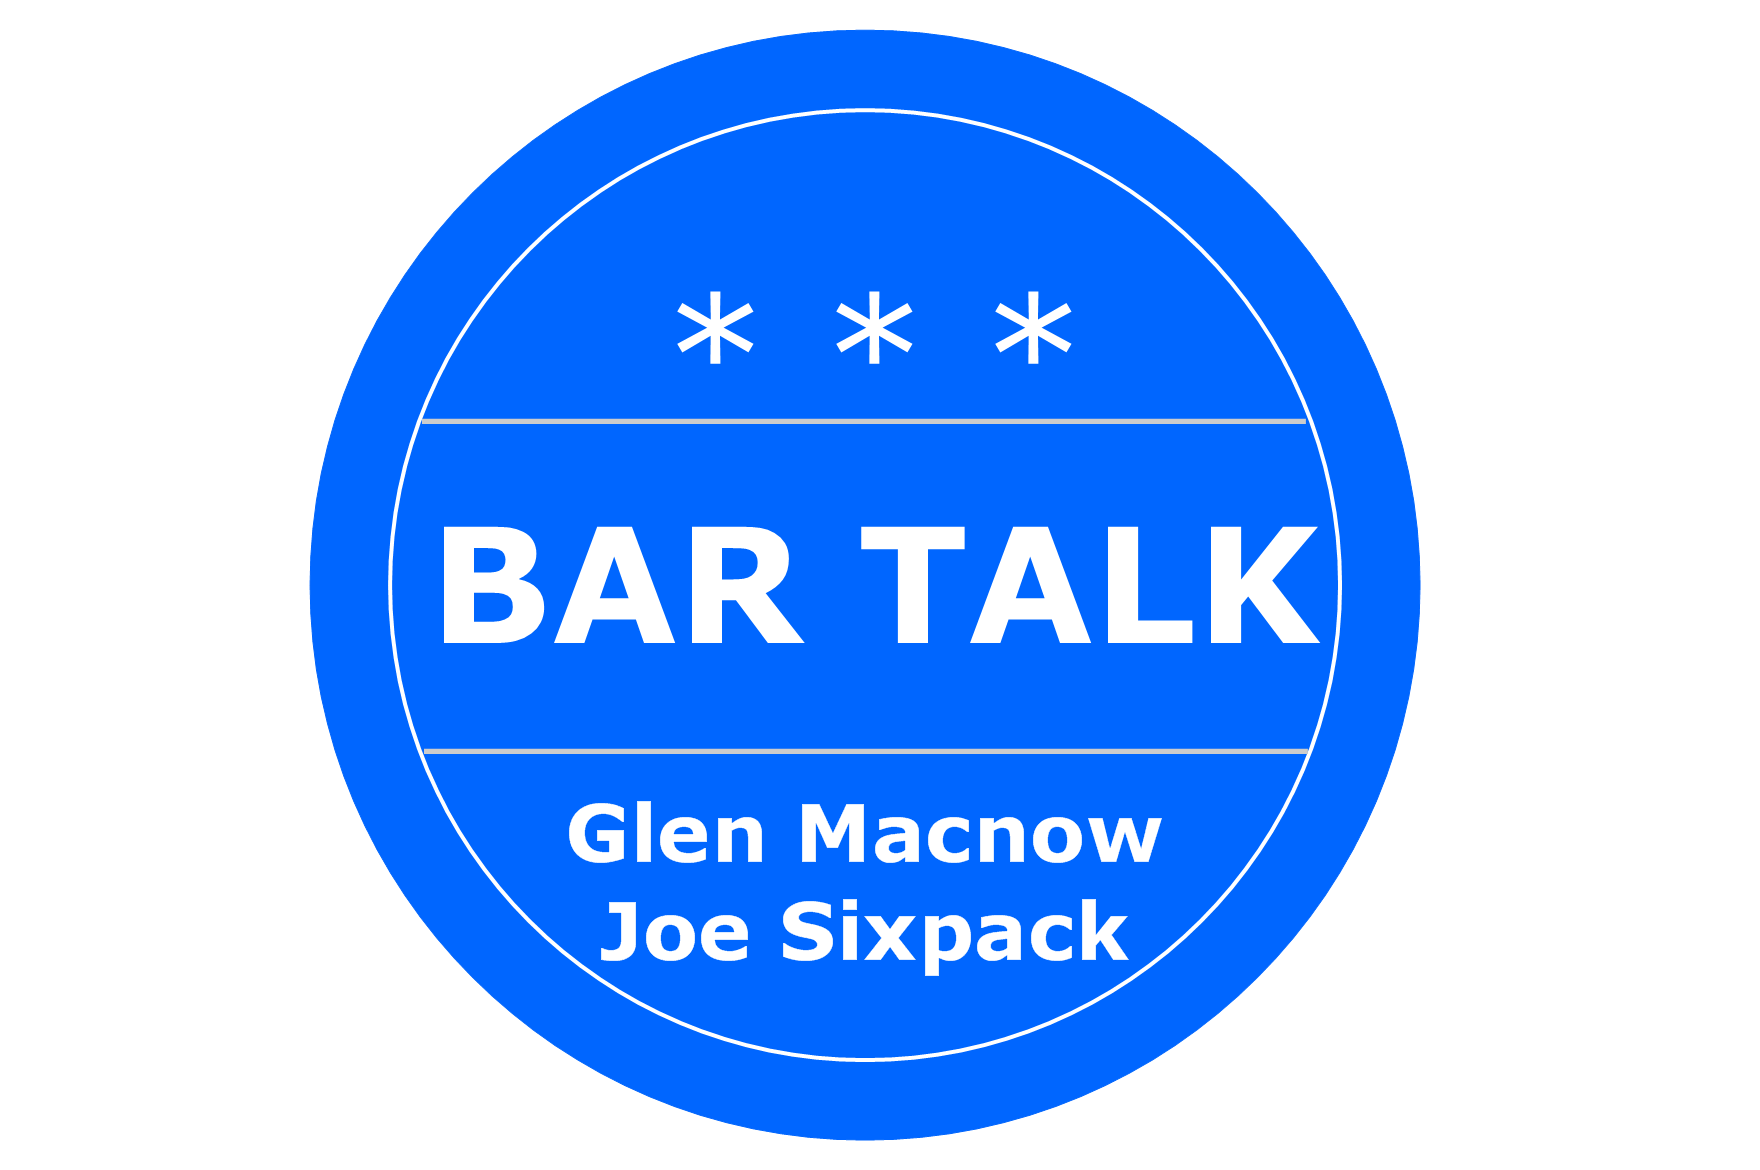 What To Talk About At A Bar